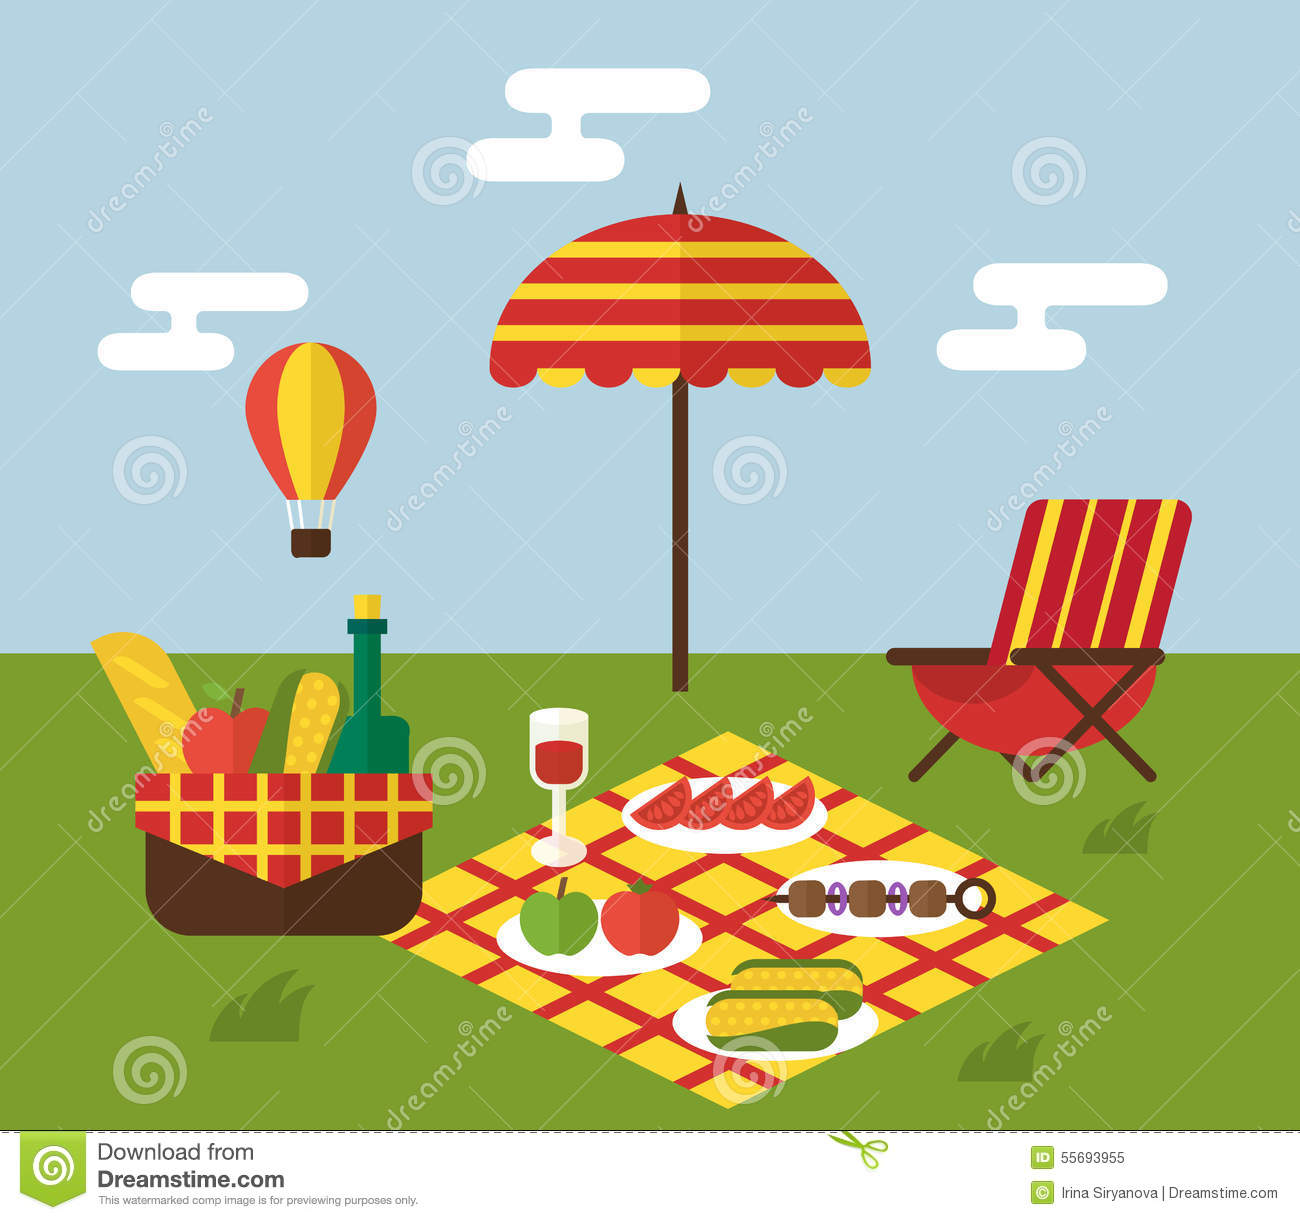 spring picnic clipart - photo #42